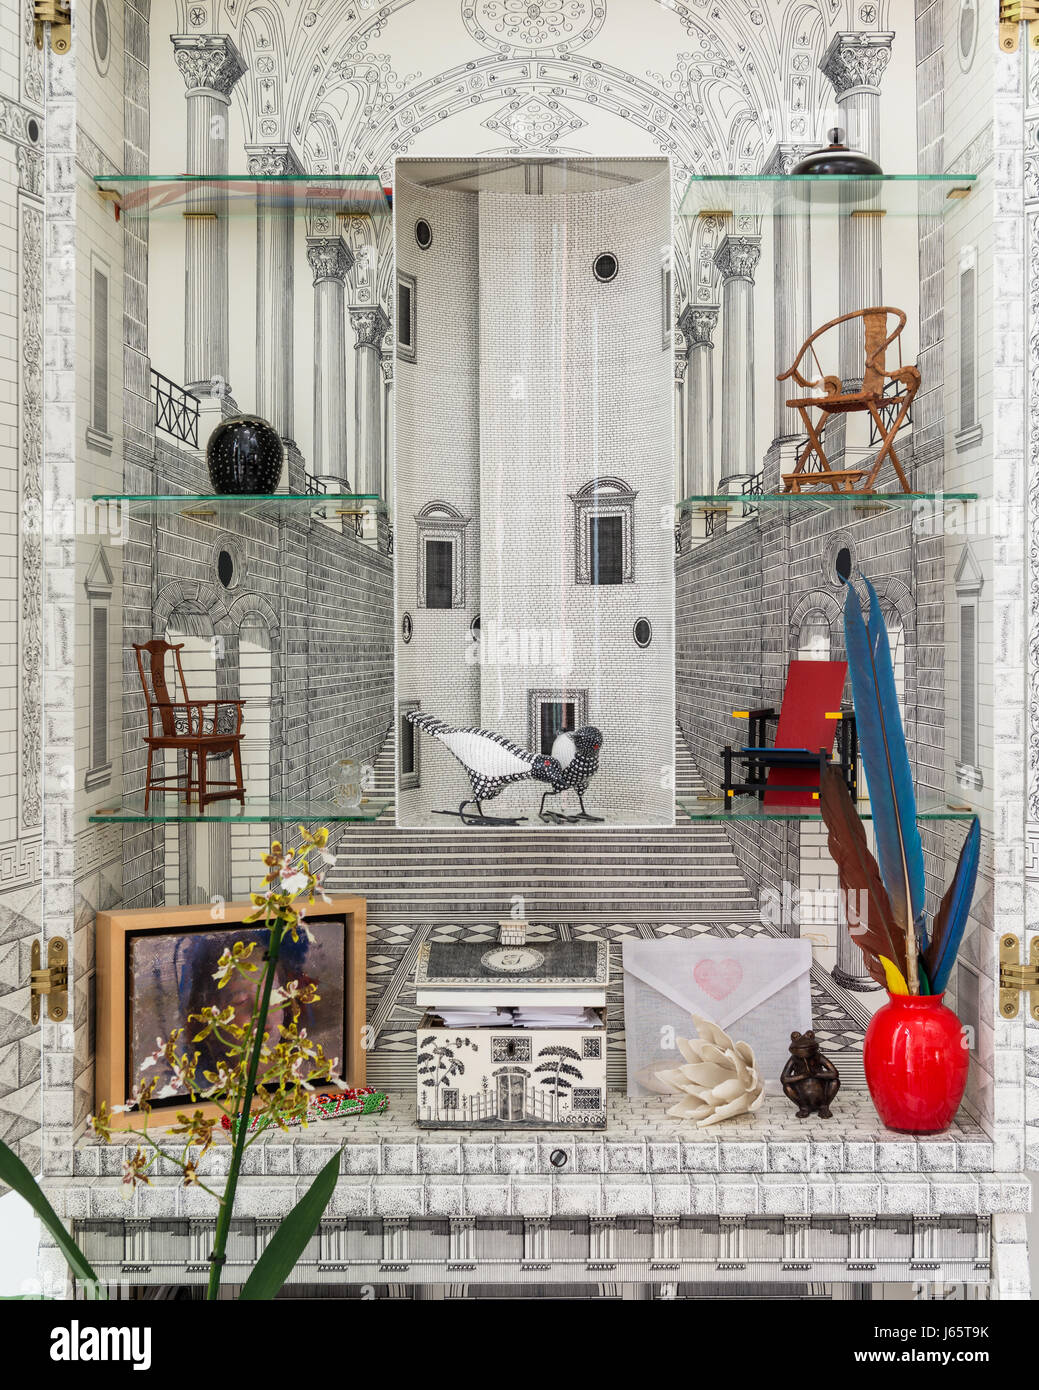 Fornasetti writing bureau, detail with glass shelves - Stock Image